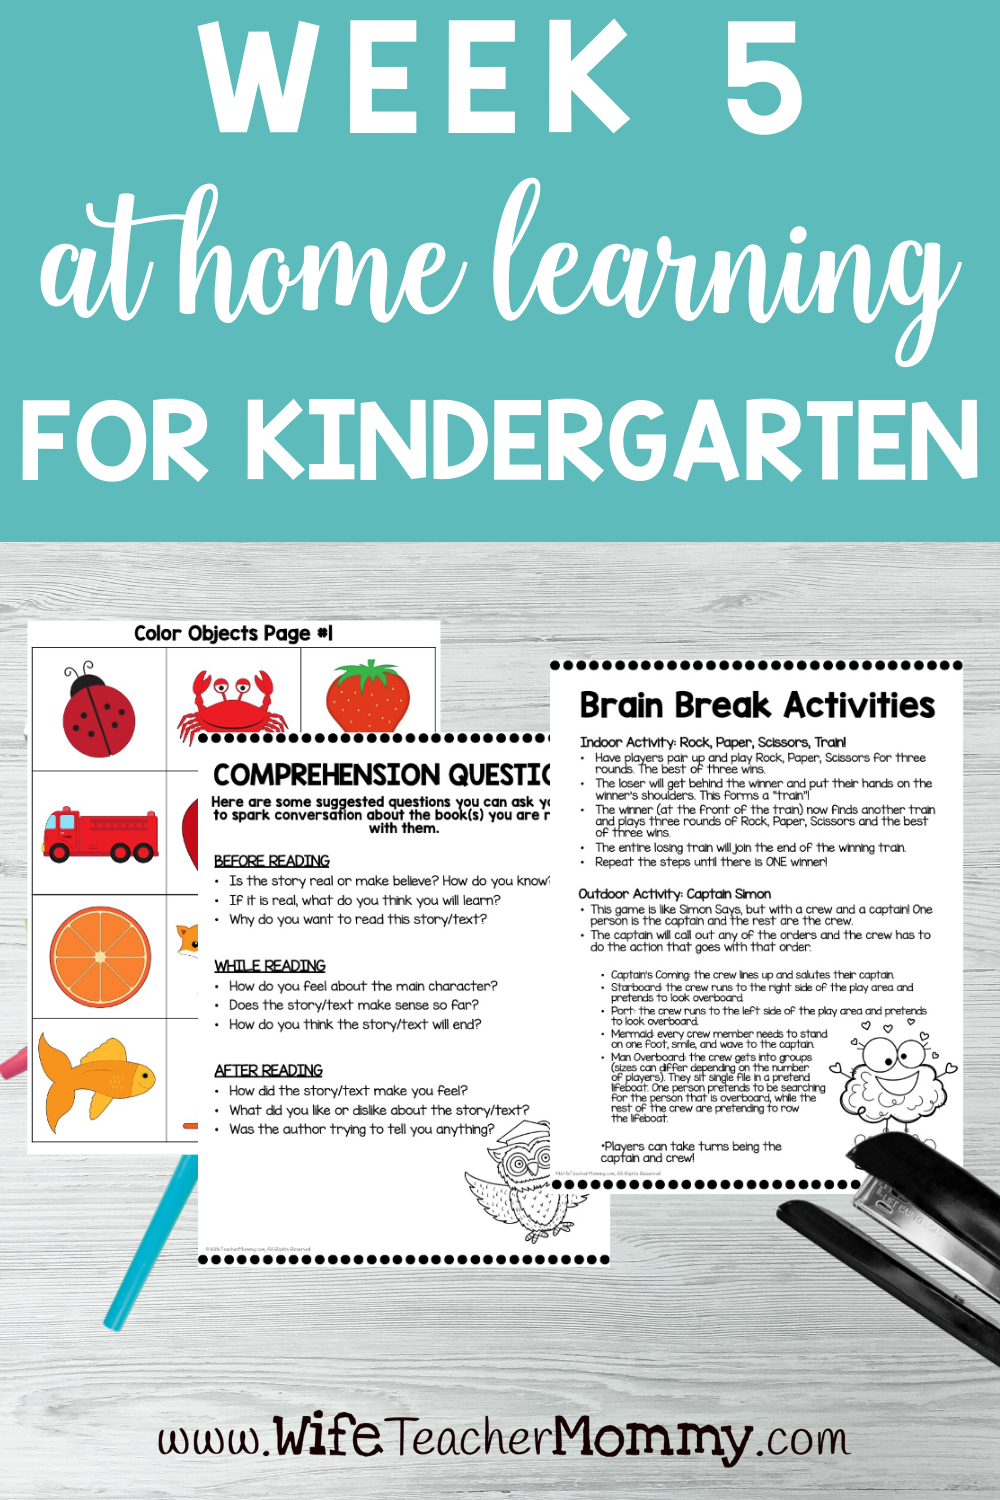 Kindergarten Distance Learning Packet At Home Learning Activities Week 5 Kindergarten Math Lesson Plans Math Lesson Plans Distance Learning [ 1500 x 1000 Pixel ]